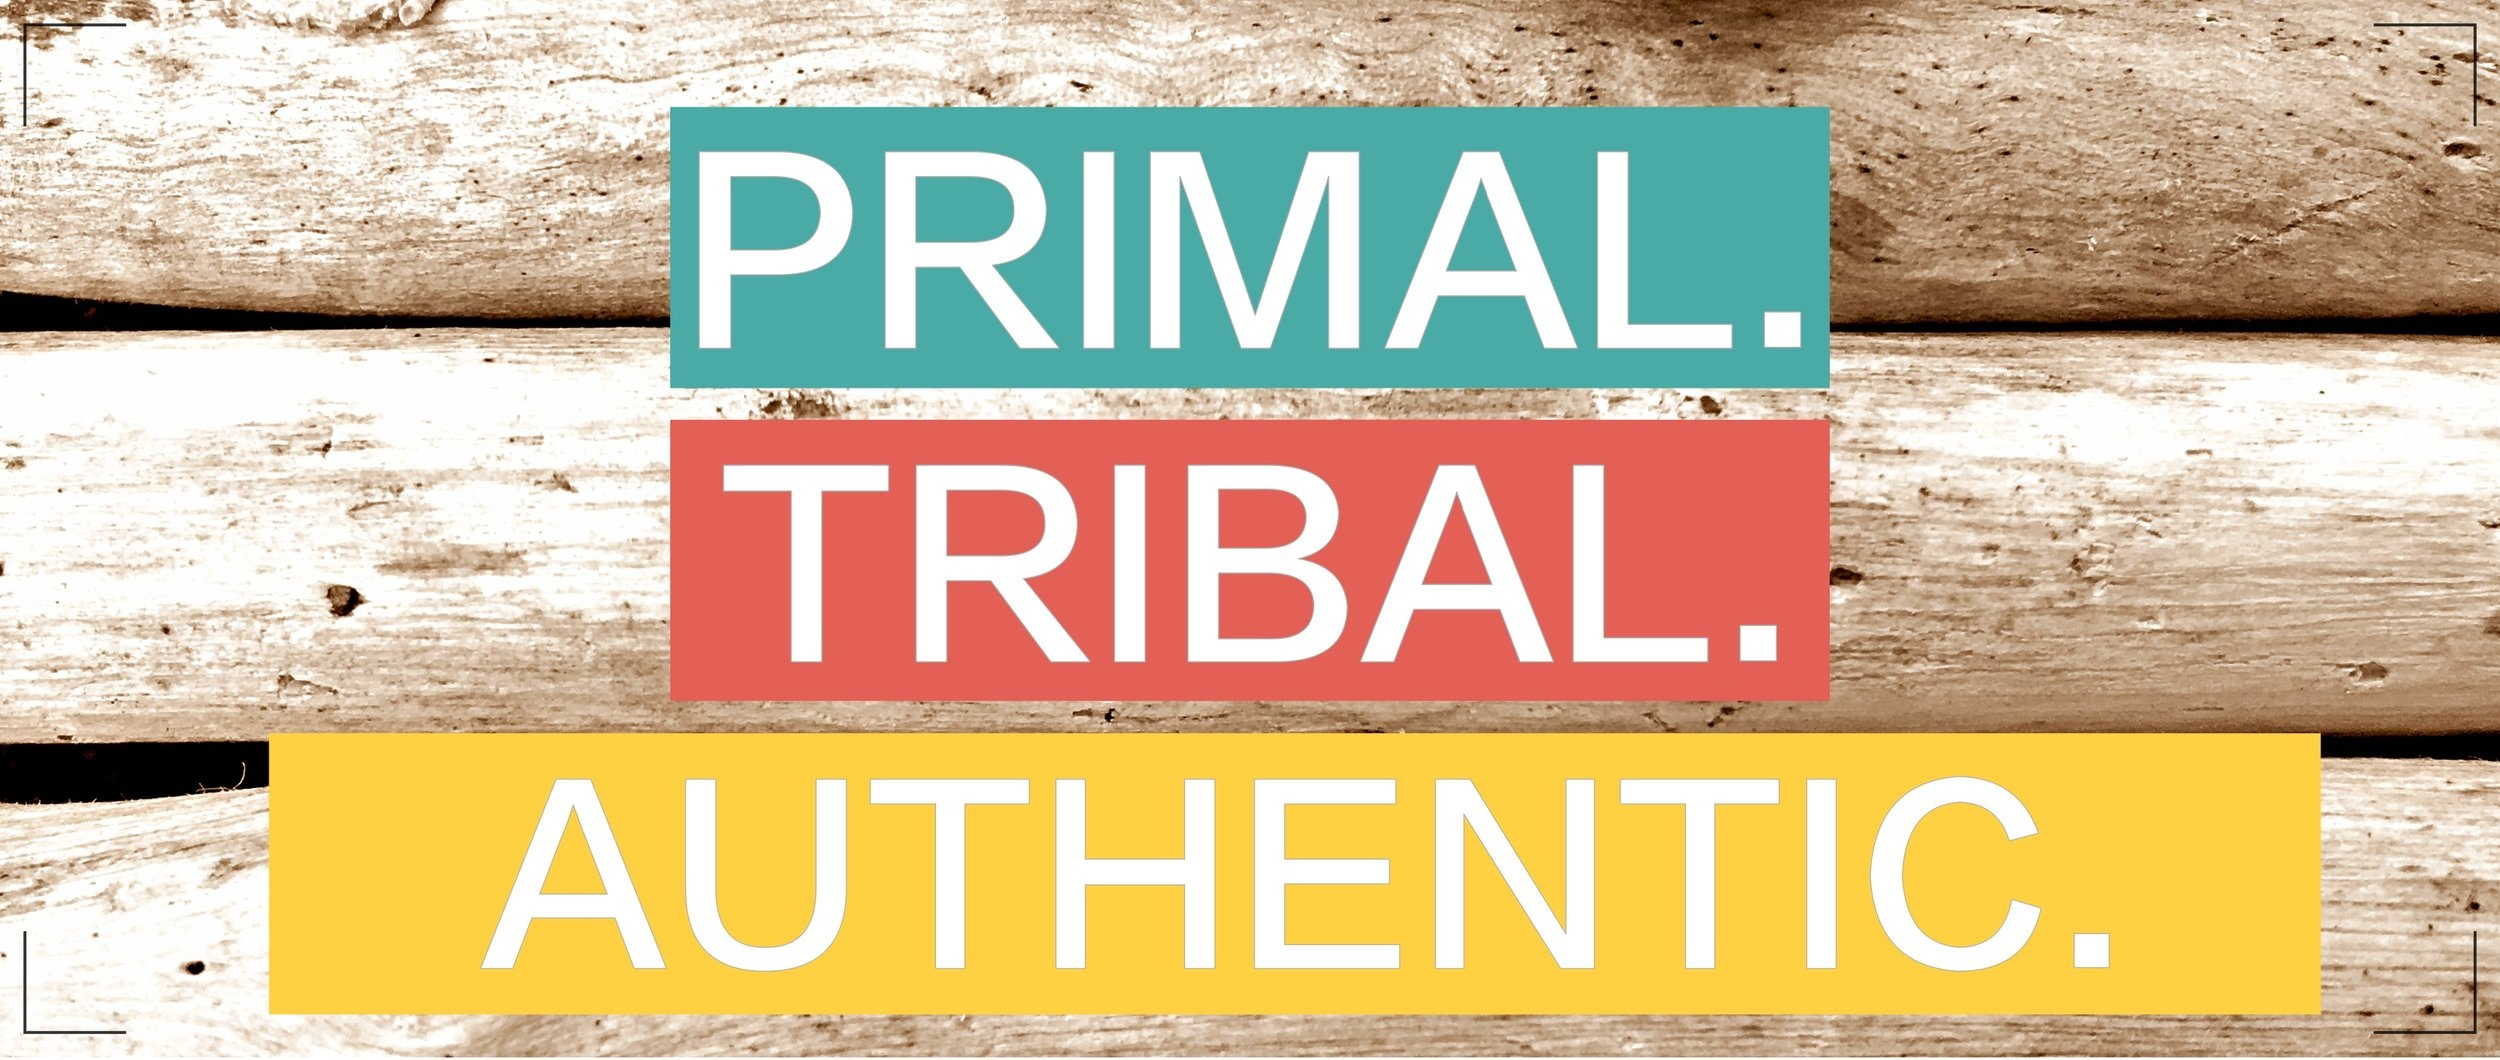 A Culture-full Online Journal & Gathering Place